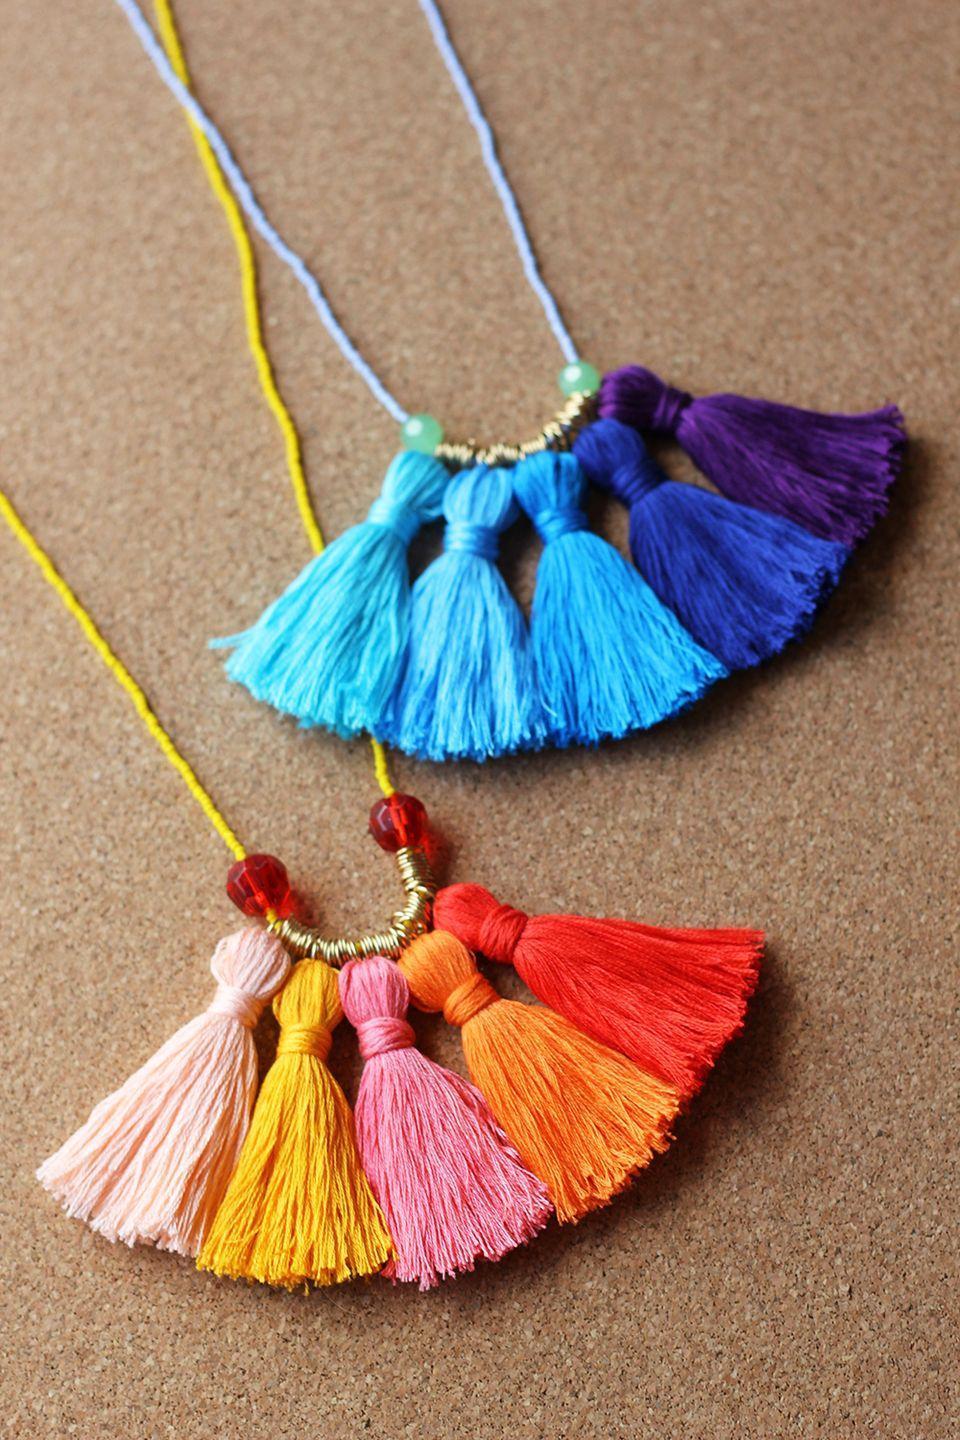 "<p>Make a statement with a colorful accessory that's party-ready. This blogger recommends using a needle to comb through the tassels after wearing to keep them neat and full. </p><p><em><a href=""http://www.homemadebanana.com/diy-ombre-tassel-necklace/"" rel=""nofollow noopener"" target=""_blank"" data-ylk=""slk:Get the tutorial at Homemade Banana »"" class=""link rapid-noclick-resp"">Get the tutorial at Homemade Banana »</a></em><br></p>"